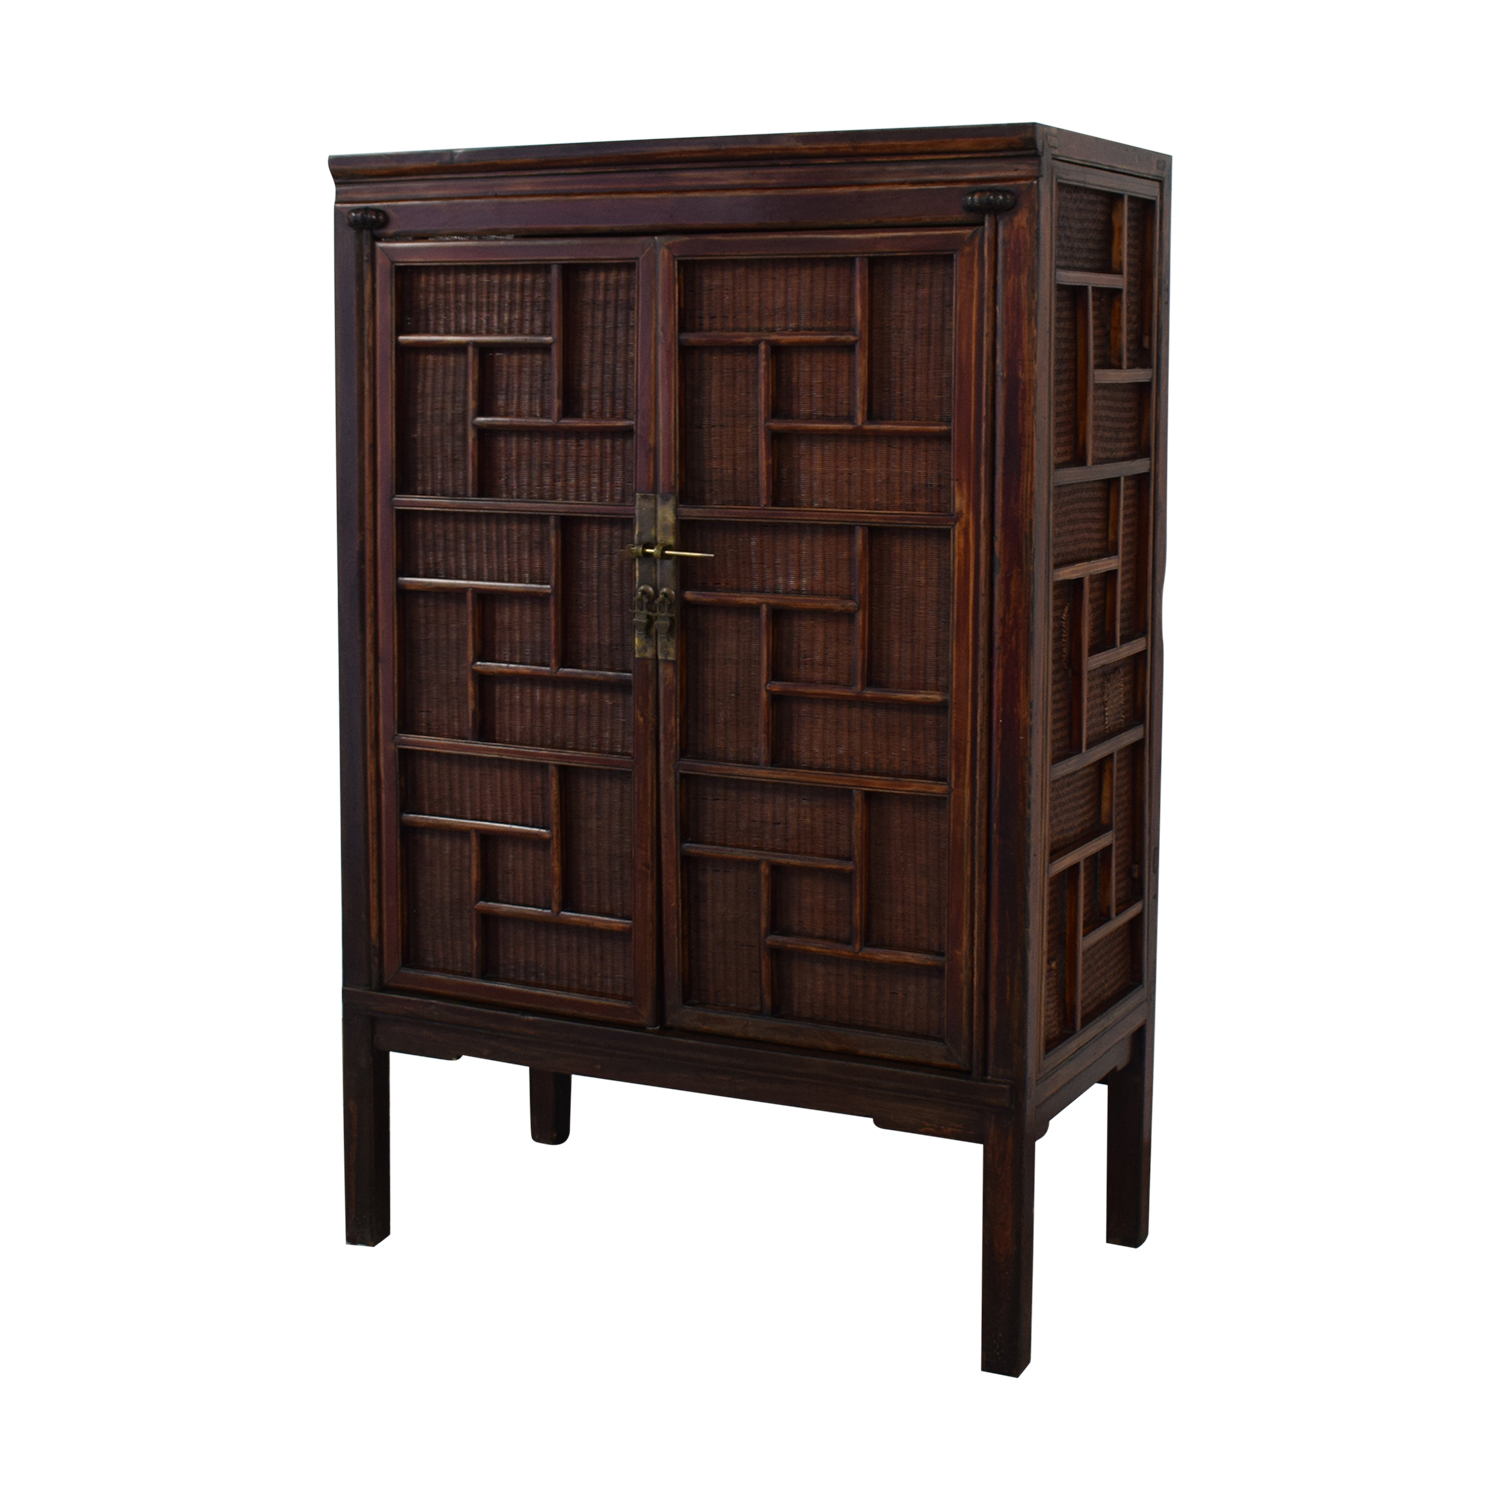 Rustic Chinese Storage Cabinet Brown